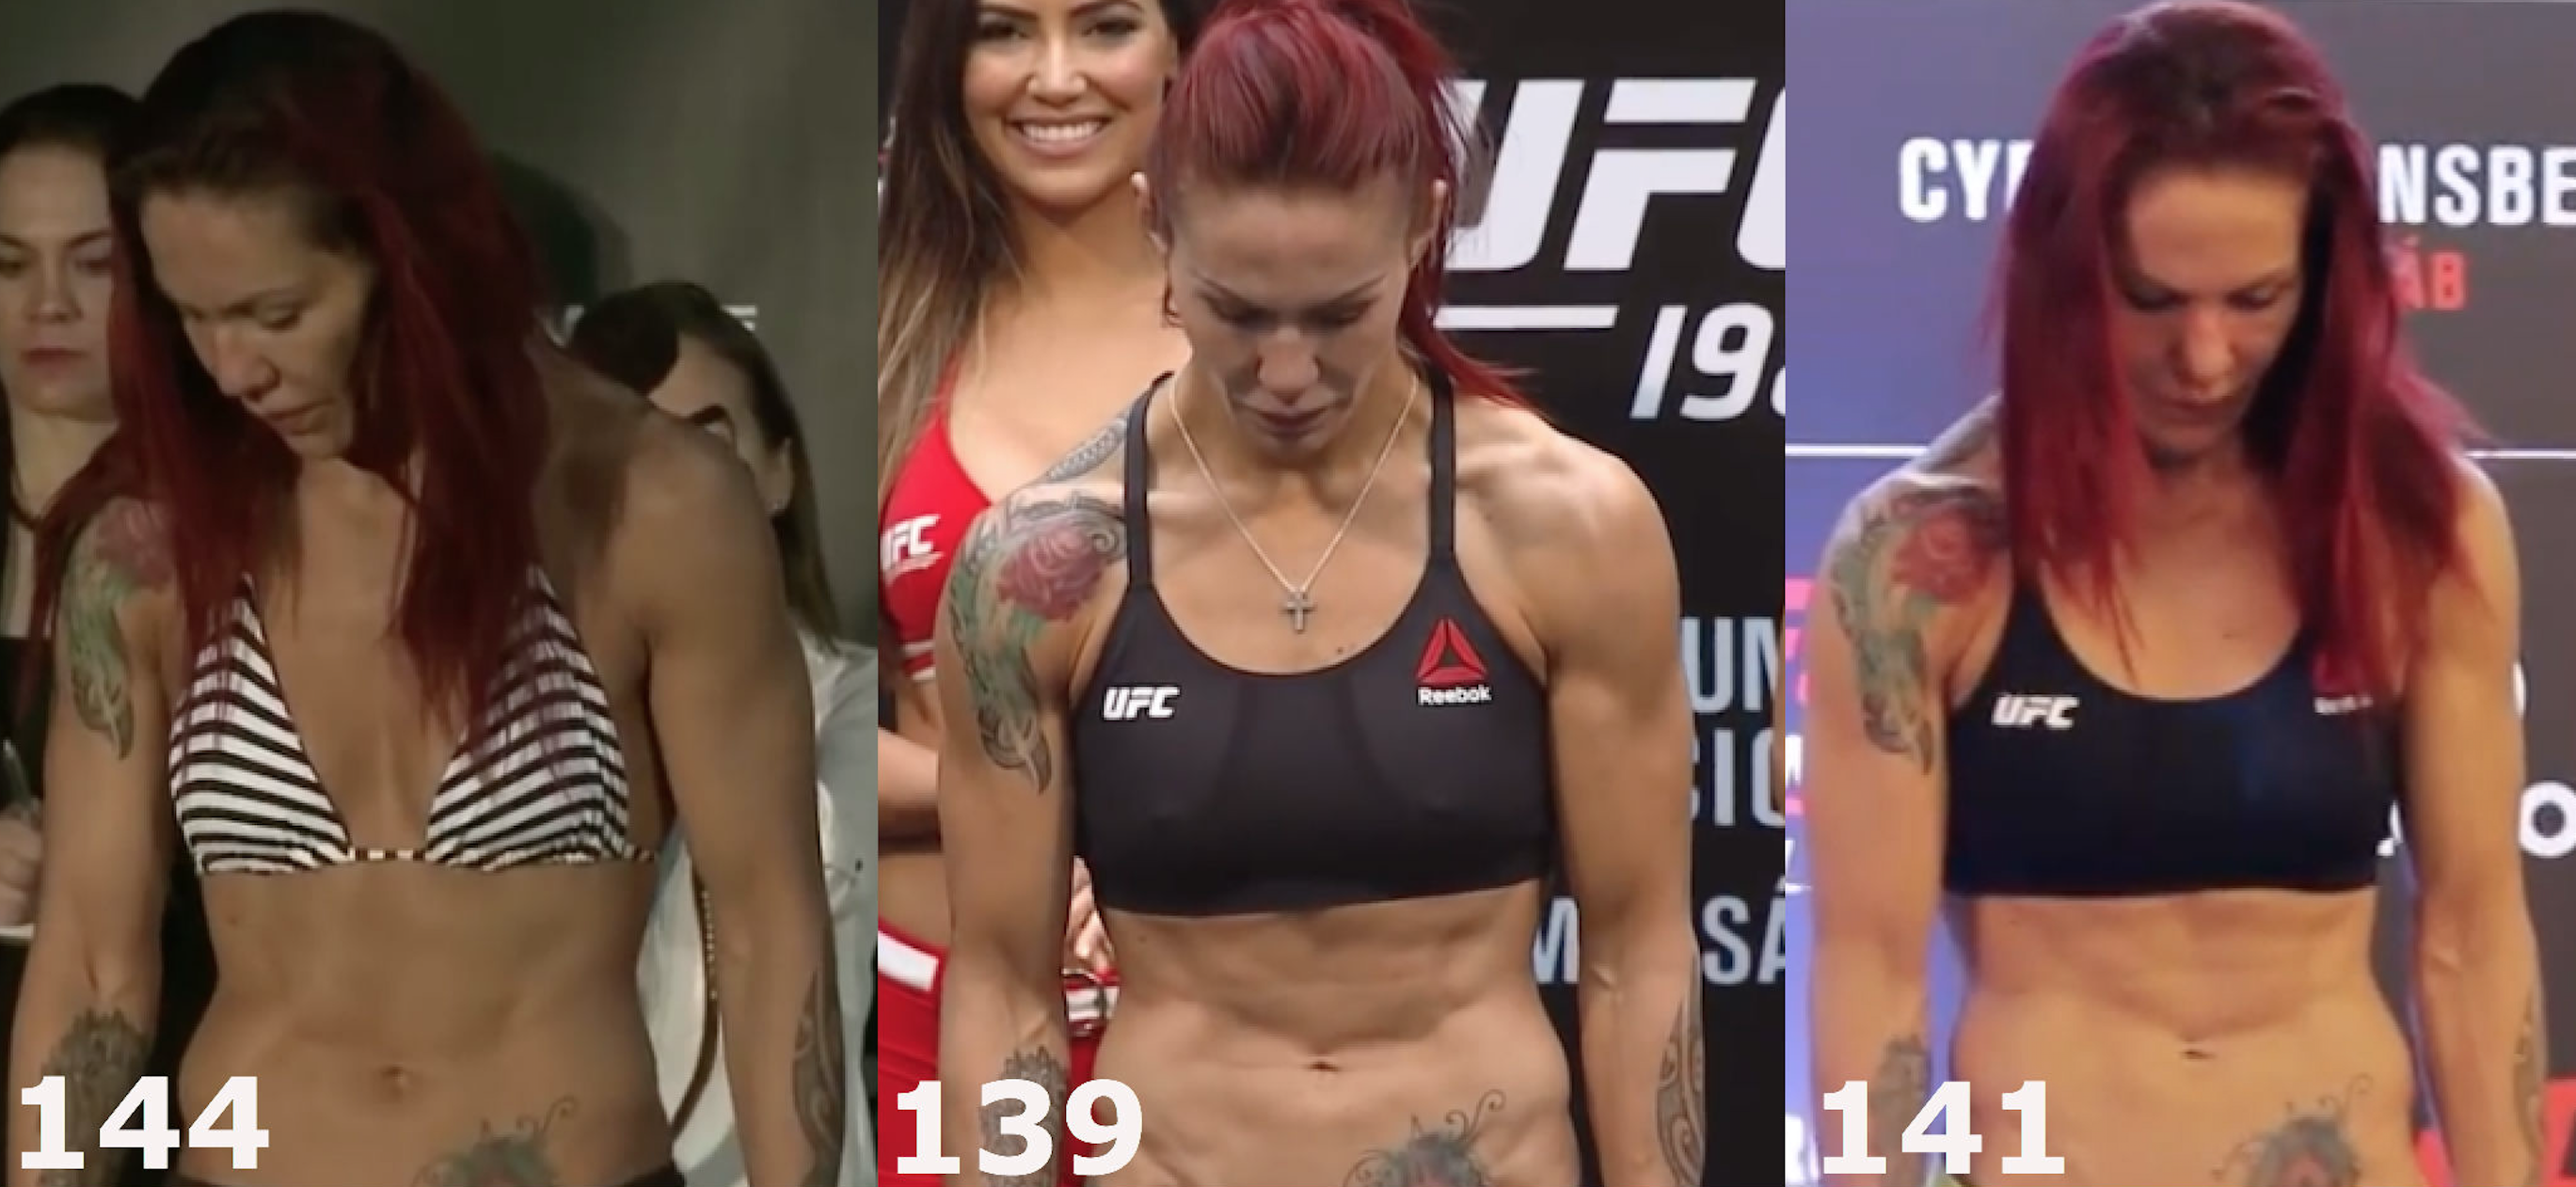 Side-by-side pic: Cris Cyborg before and after brutal ...